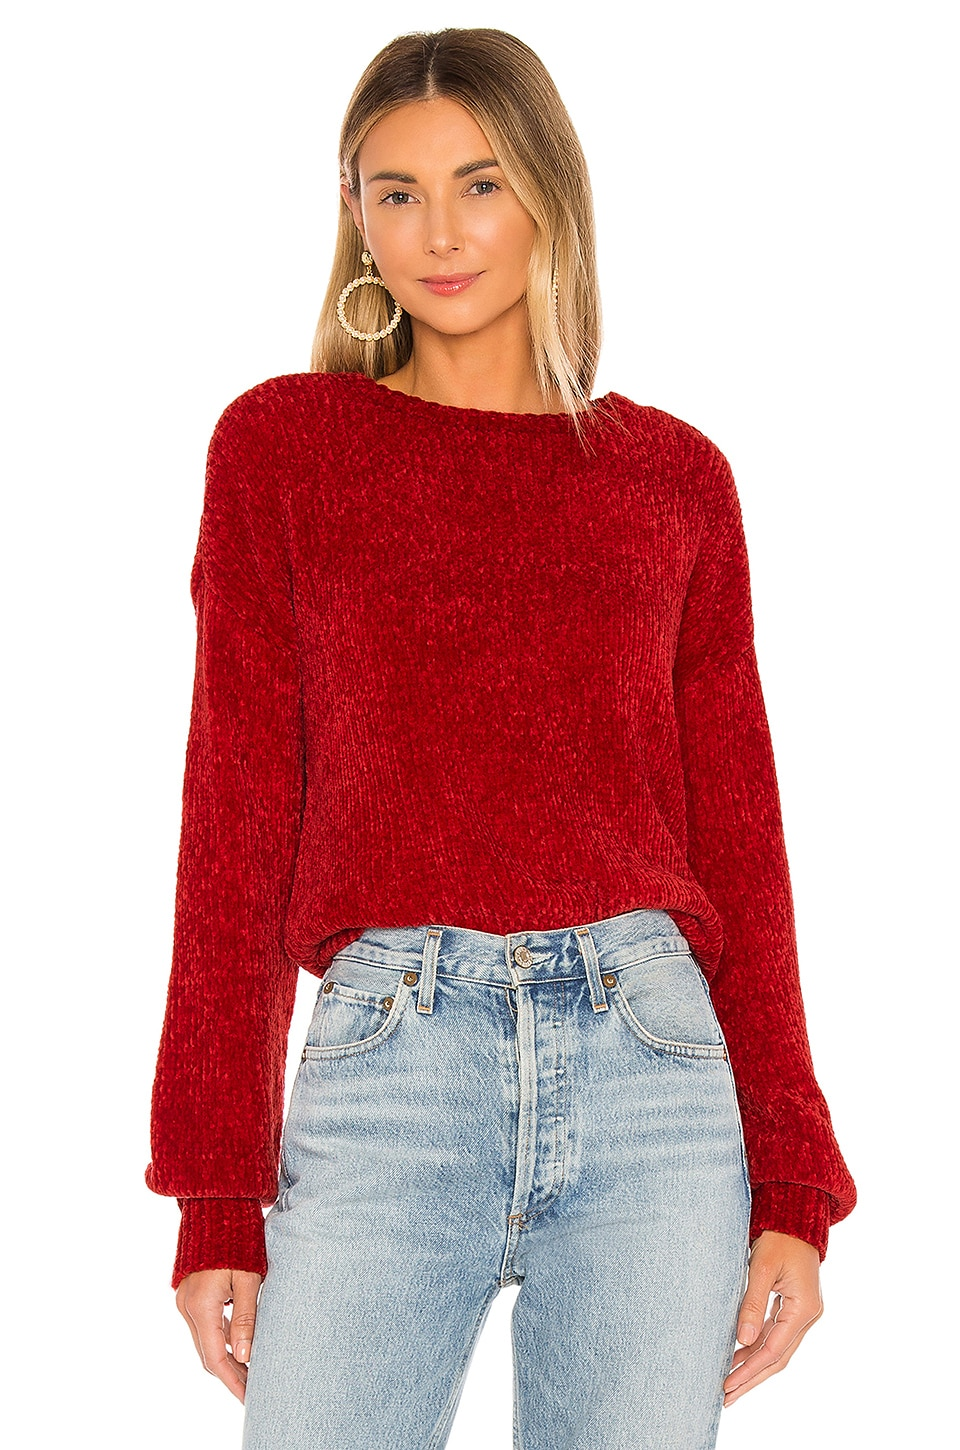 Lovers + Friends Riner Sweater in Red